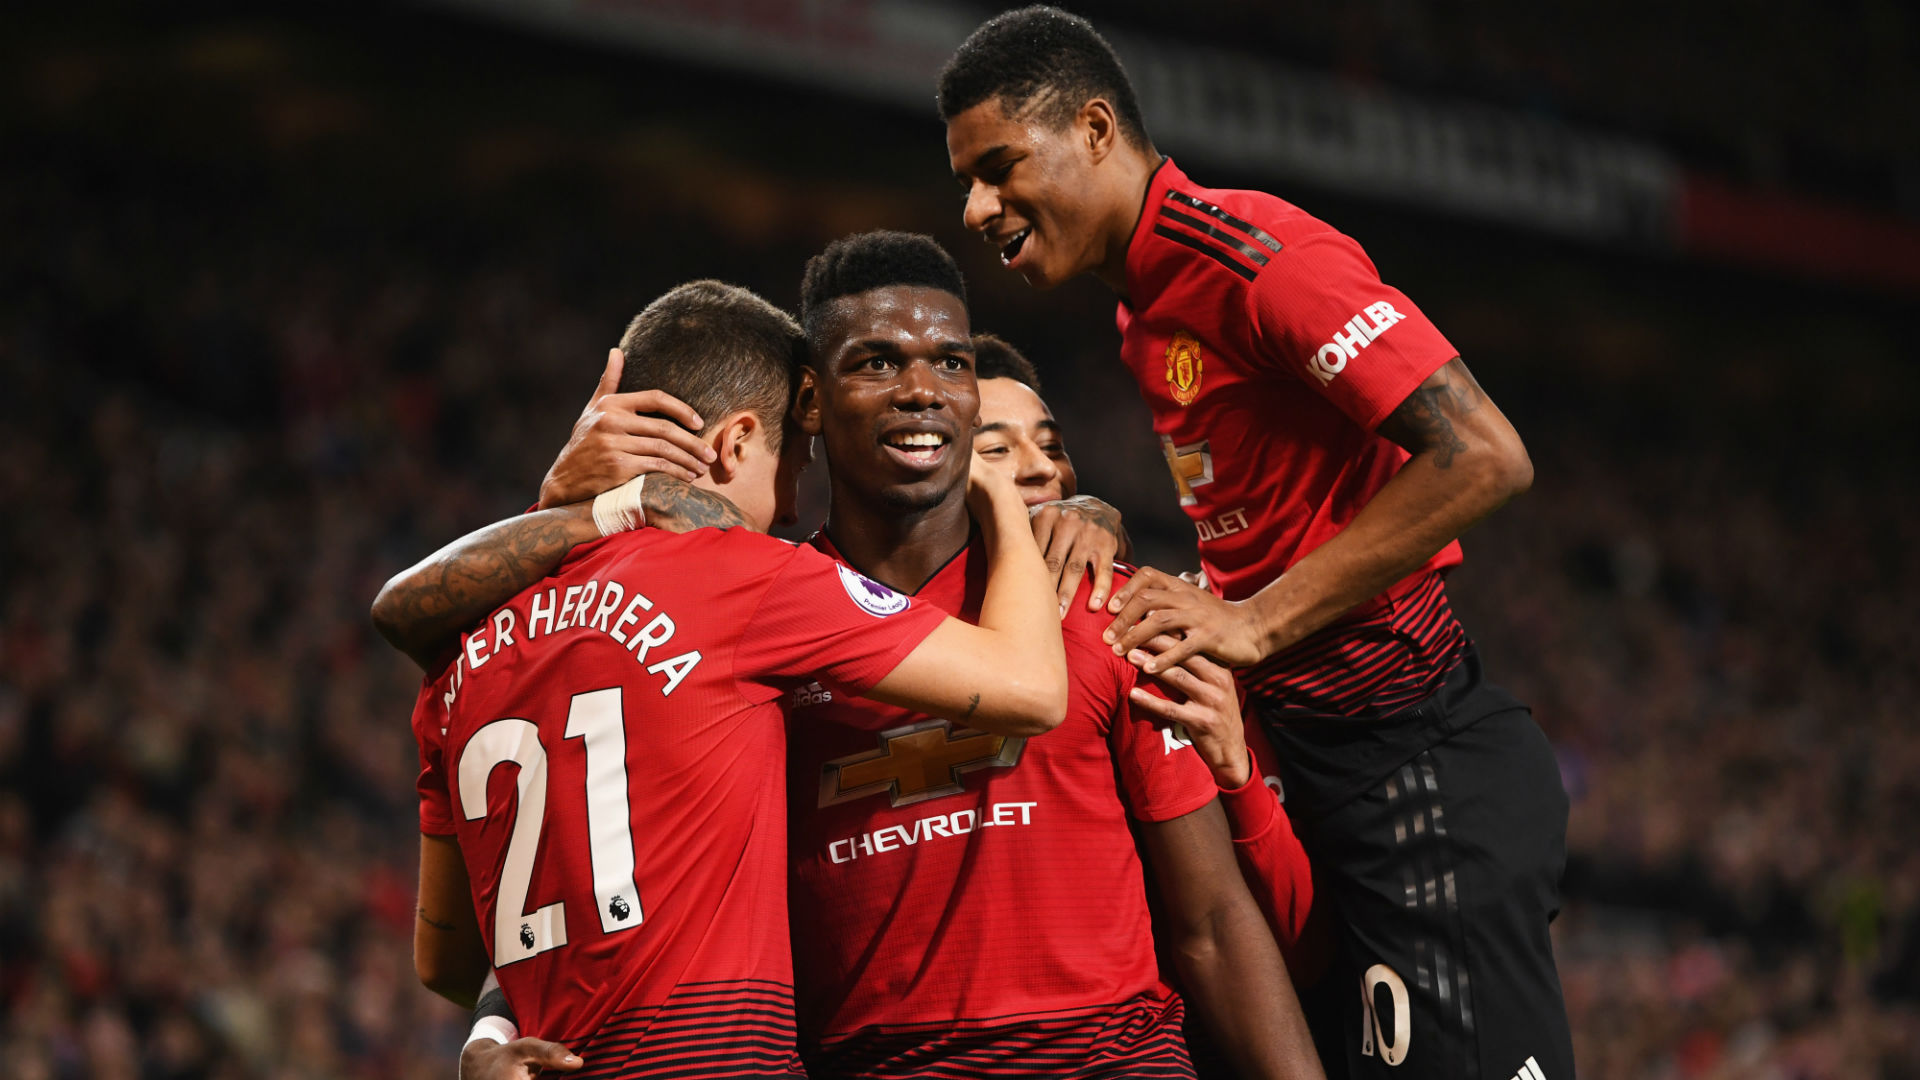 Manchester United's Marcus Rashford 'different class', says Ole Gunnar Solskjaer